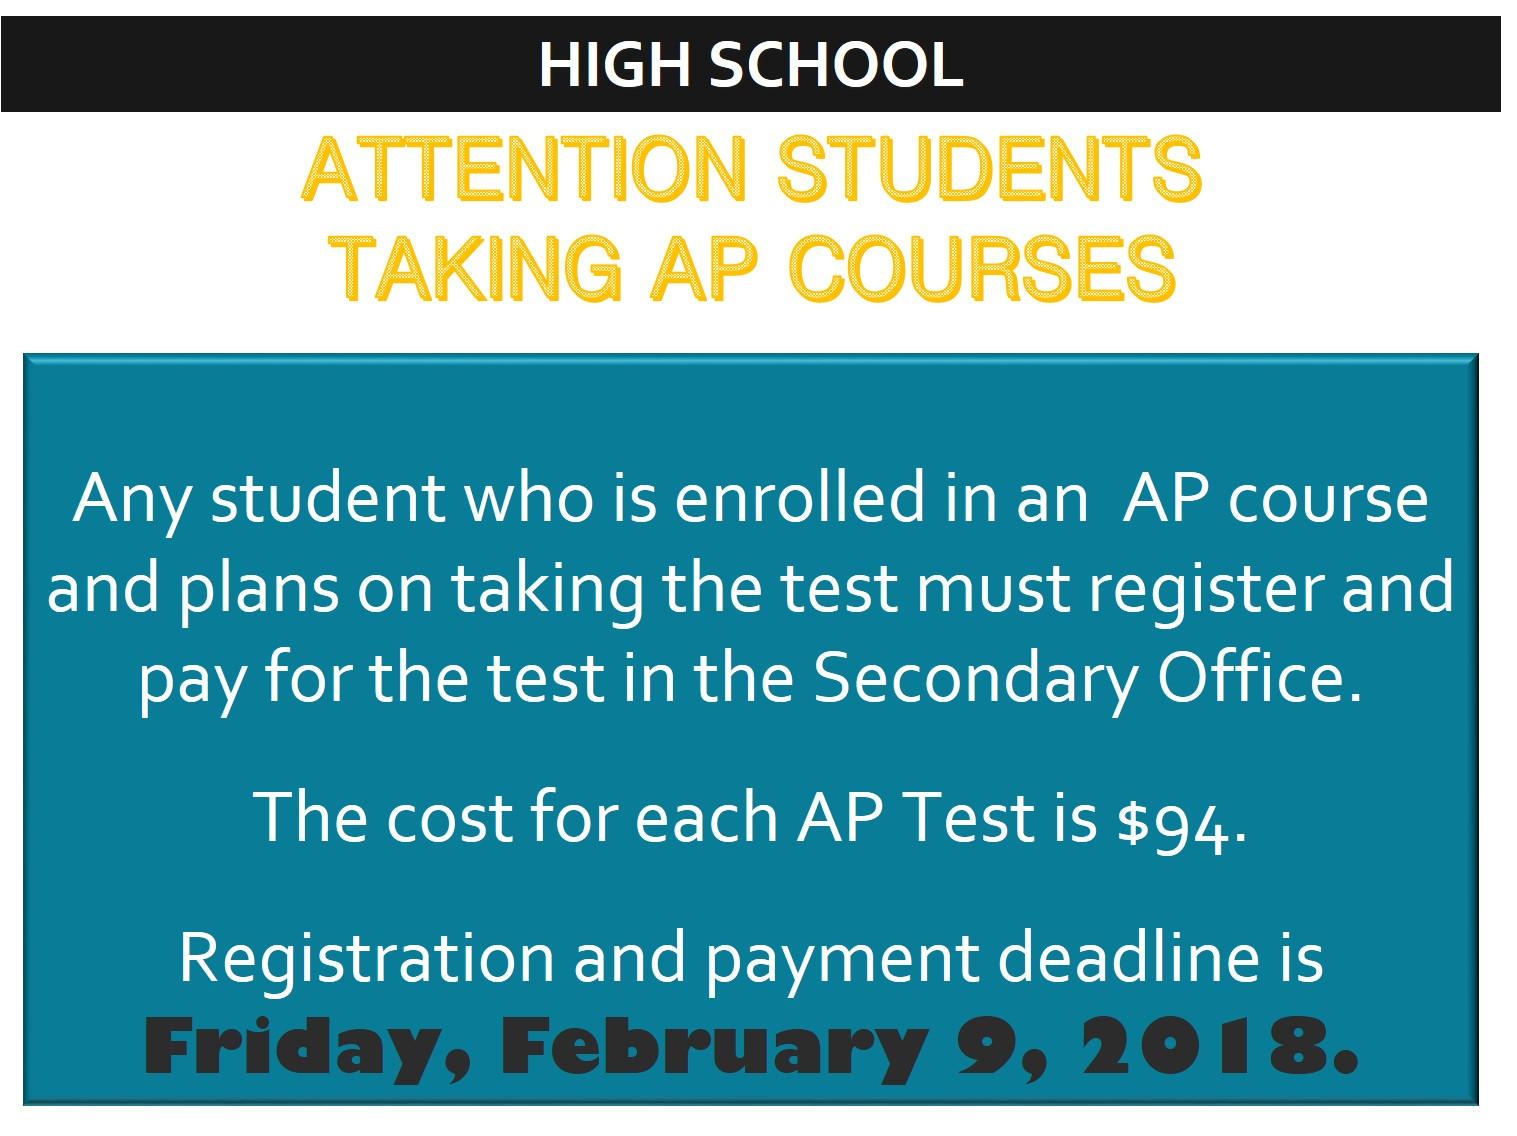 ap-test-registration.jpg